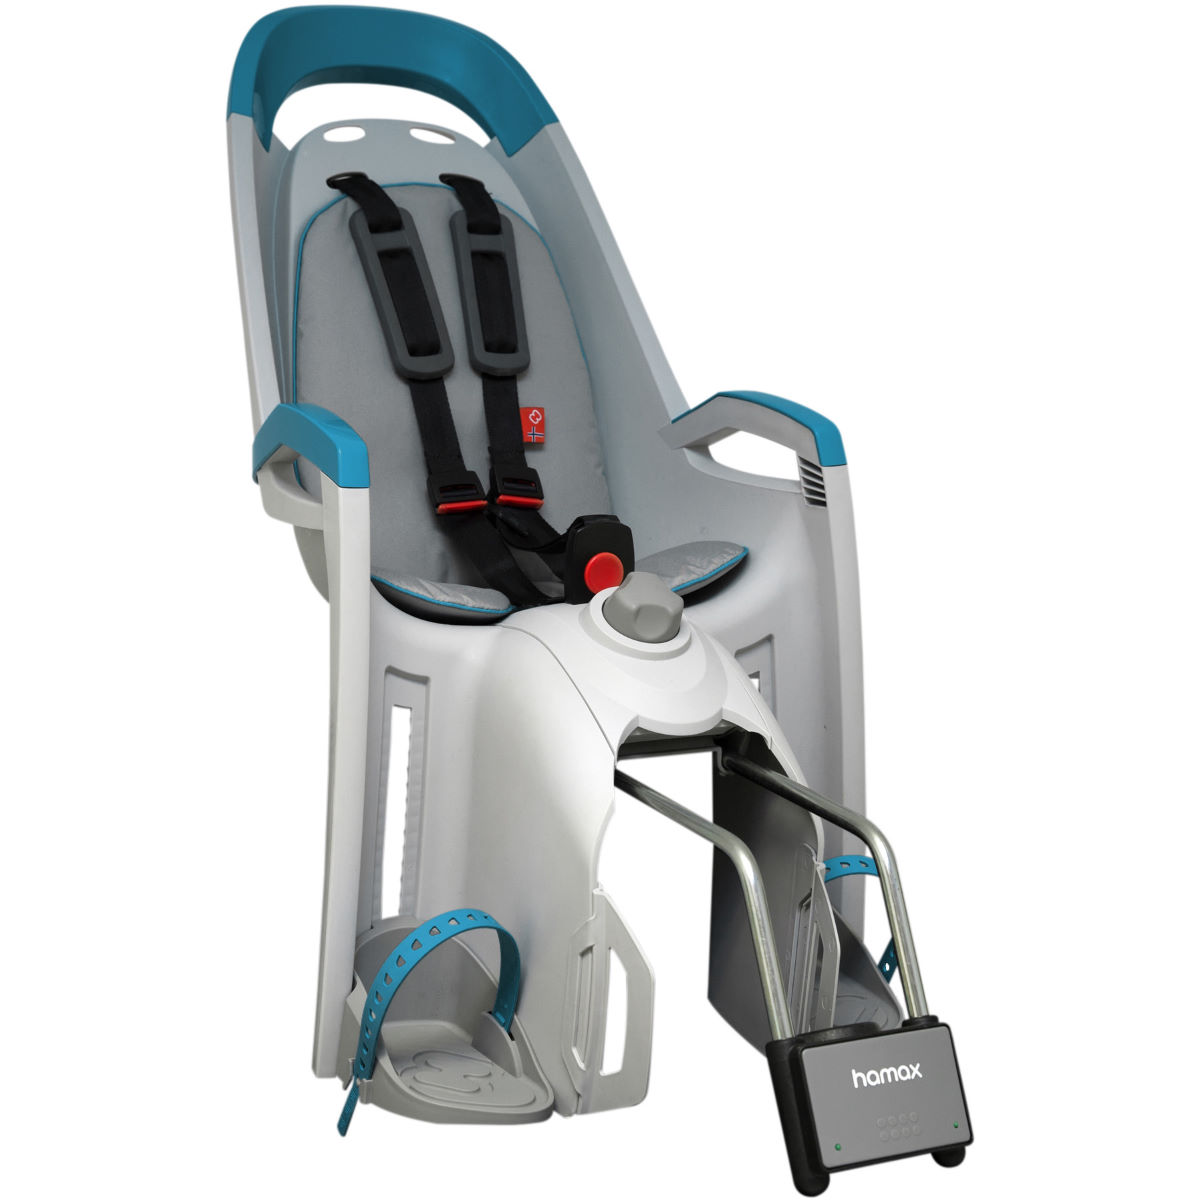 Hamax Hamax Amaze Rear Mounted Childseat - Sillas infantiles